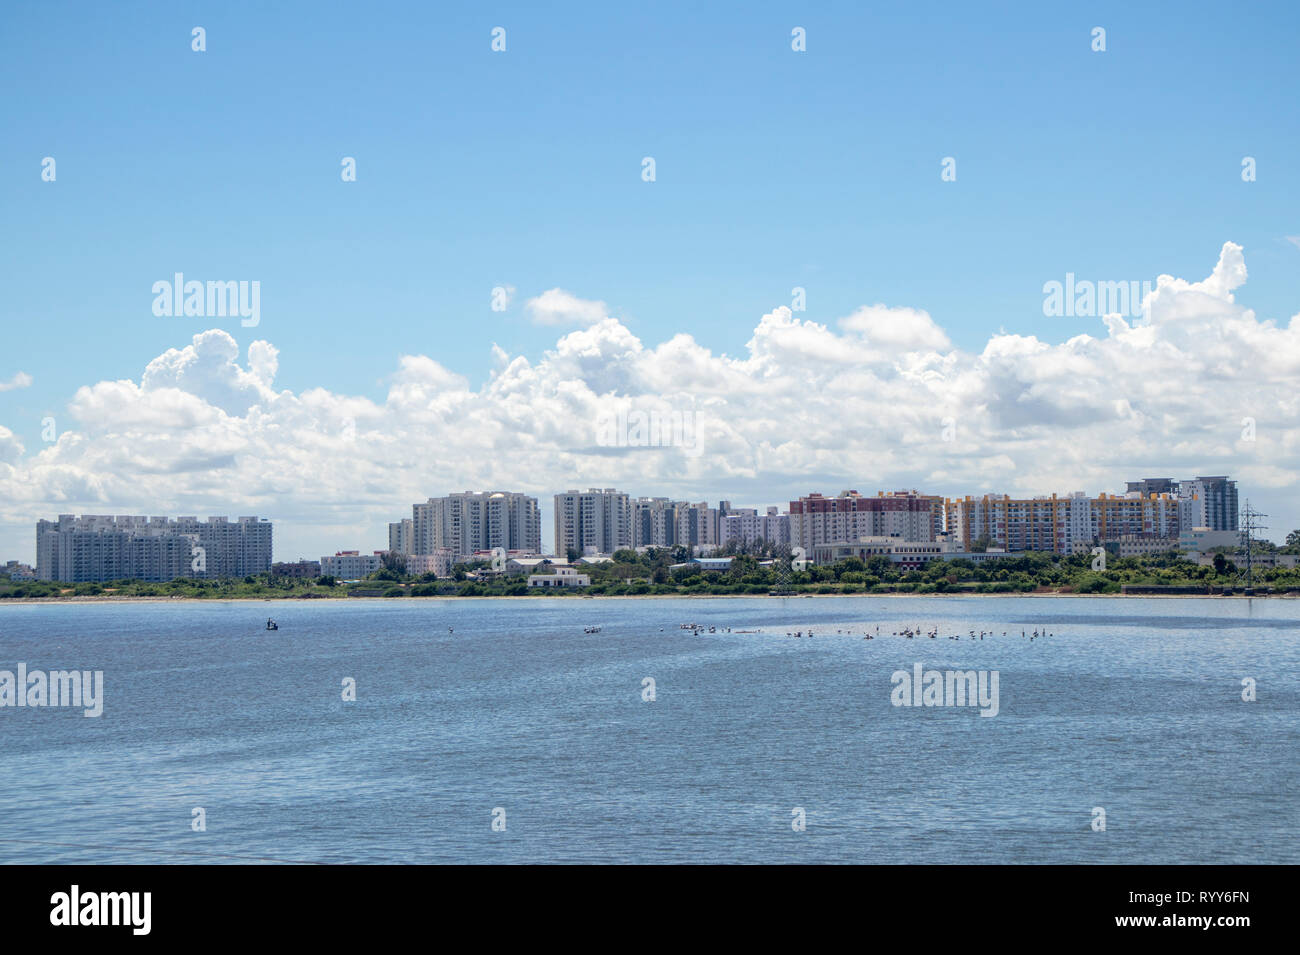 City scape Lake view Apartment buildings at ECR Chennai found along the backwaters of Muttukadu - Stock Image